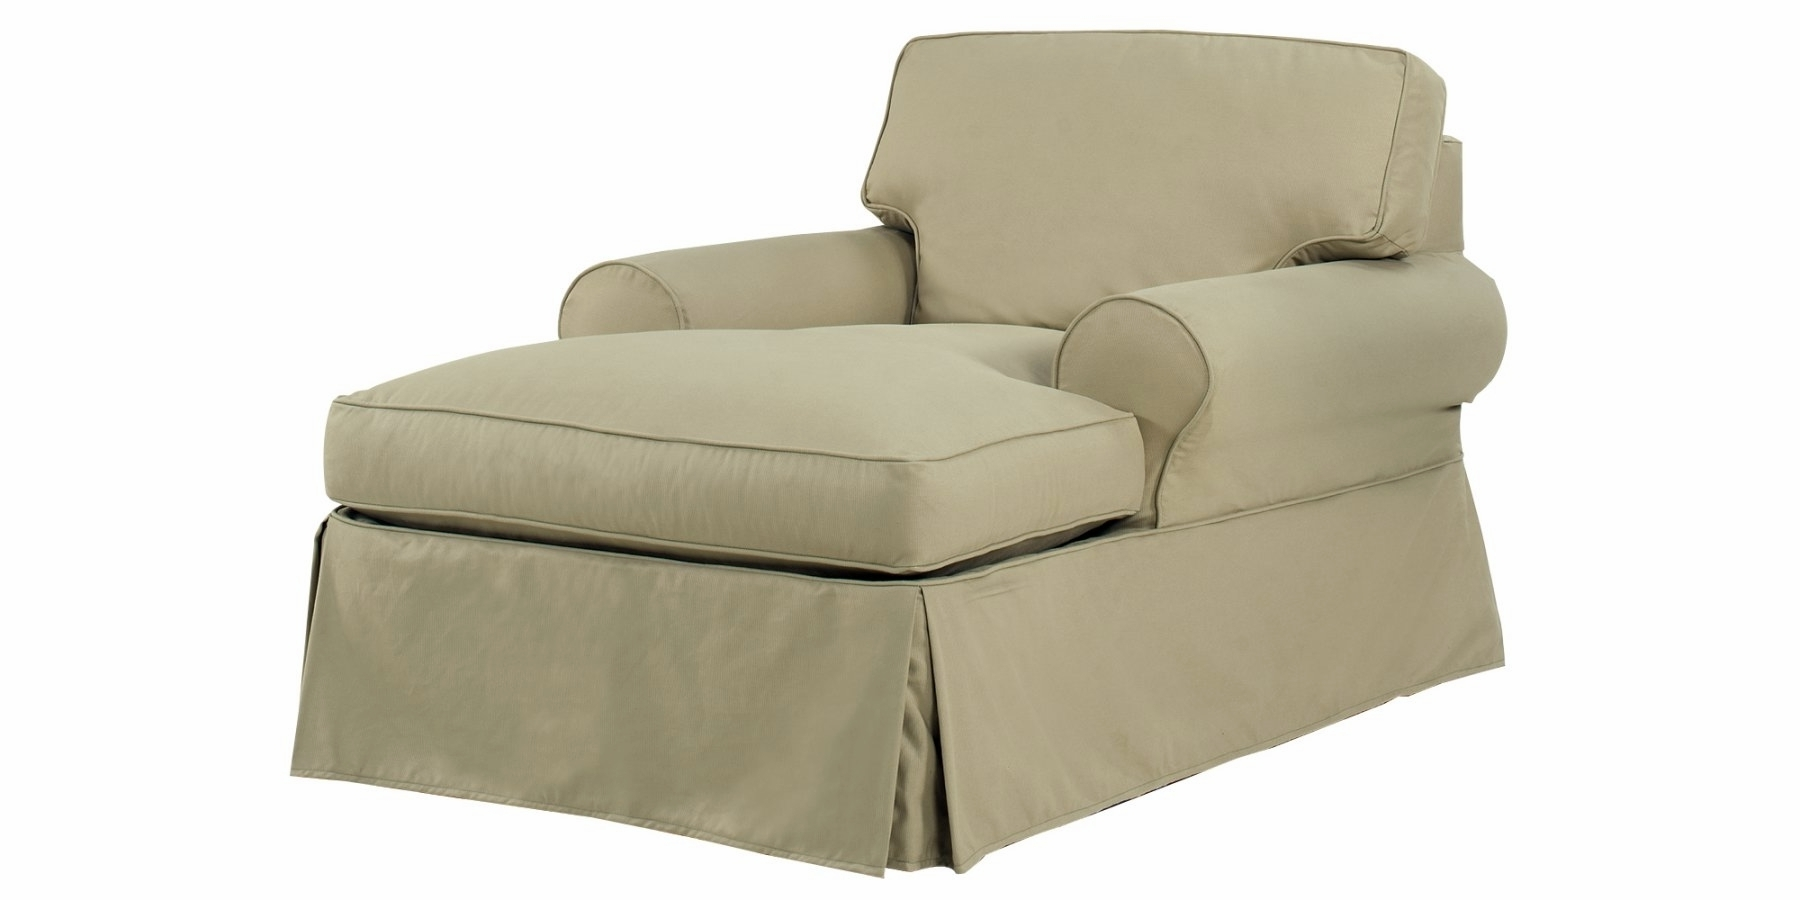 Armchair : Lounge Chair Outdoor Indoor Chaise Lounge Chaise Lounge Regarding Best And Newest Sofa Lounge Chairs (View 1 of 15)